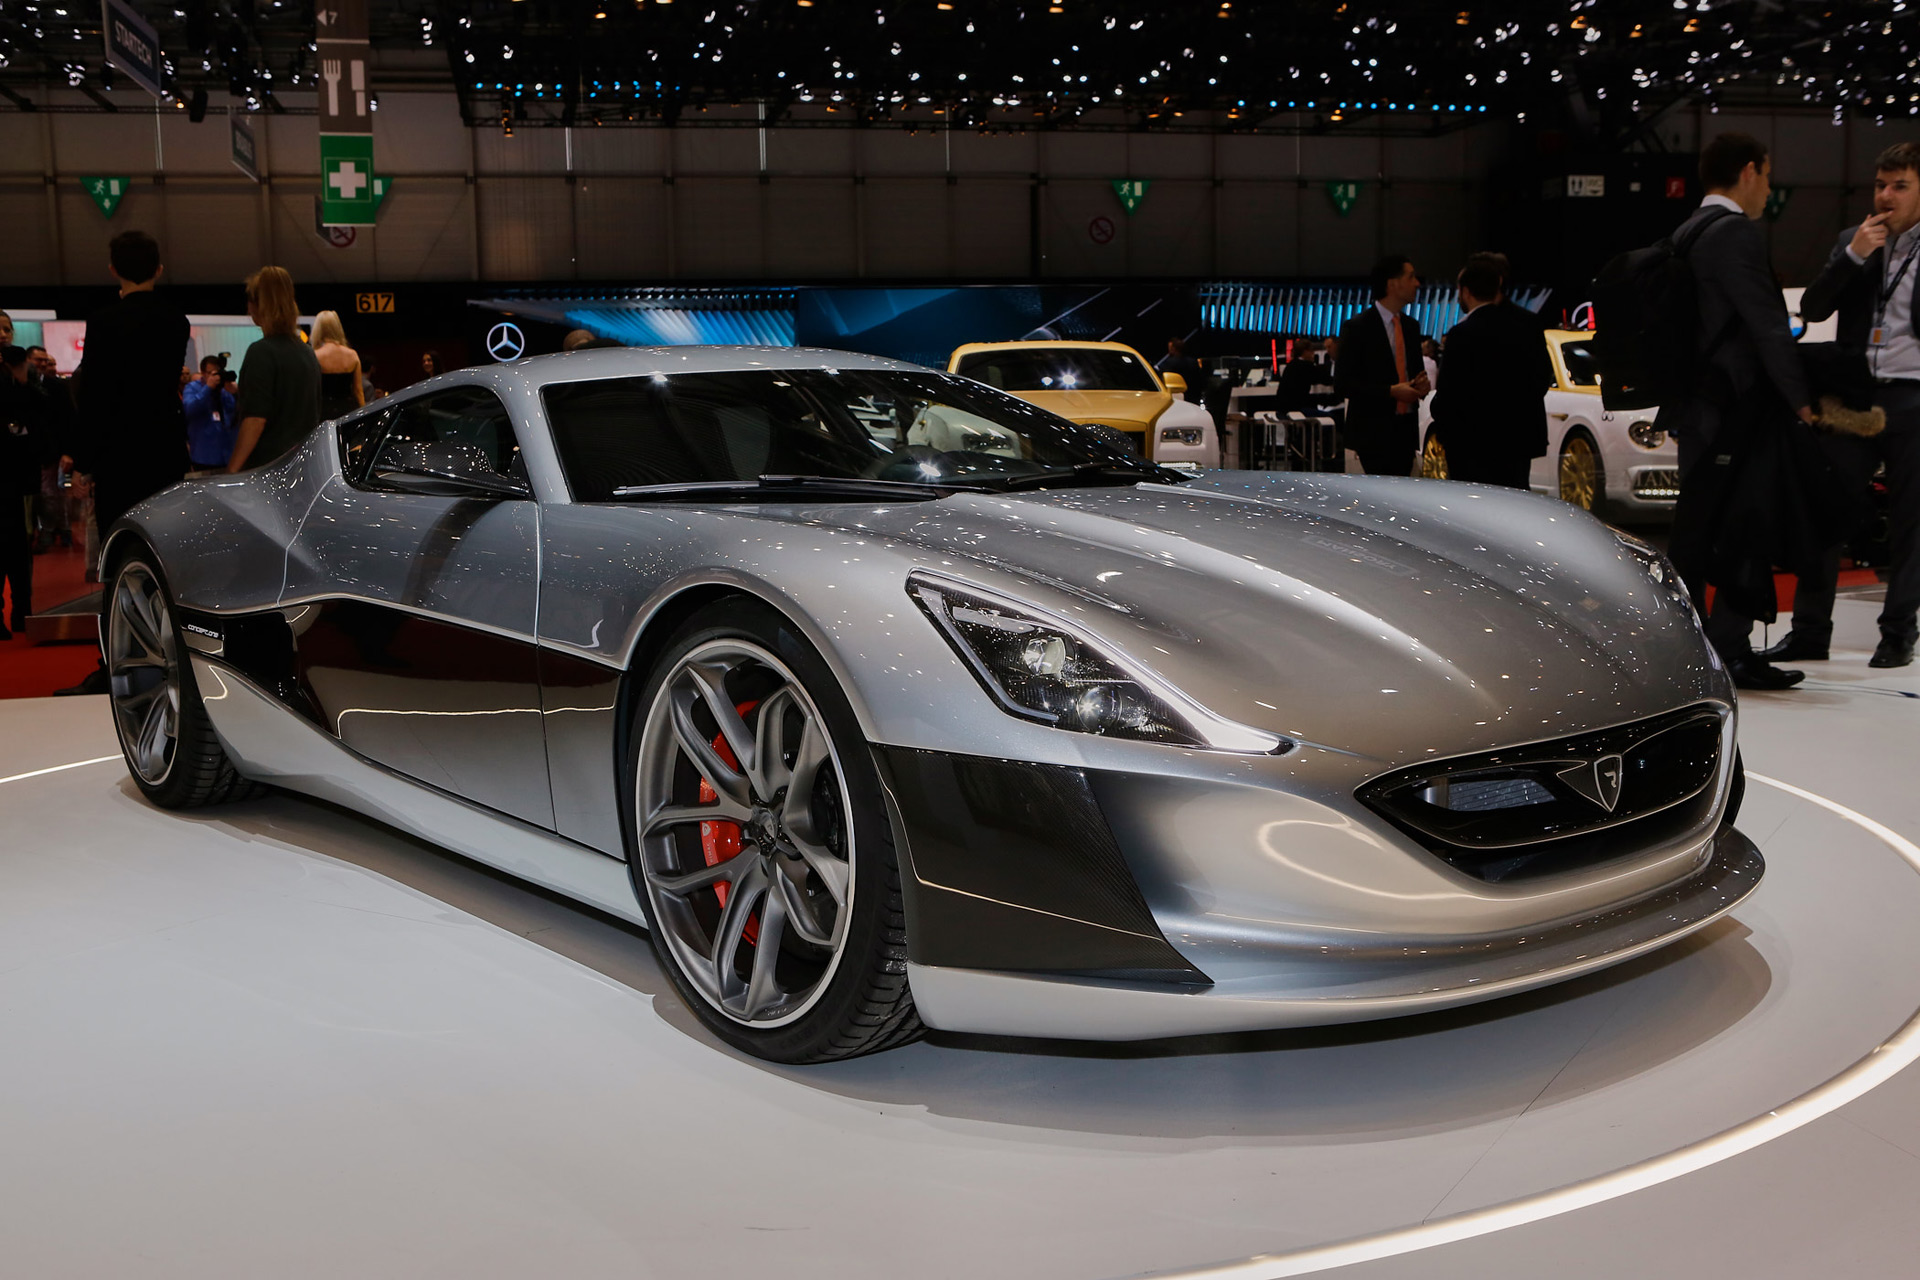 2018 Land Rover Models >> Rimac Concept_One electric supercar debuts in production trim, is joined by track-focused model